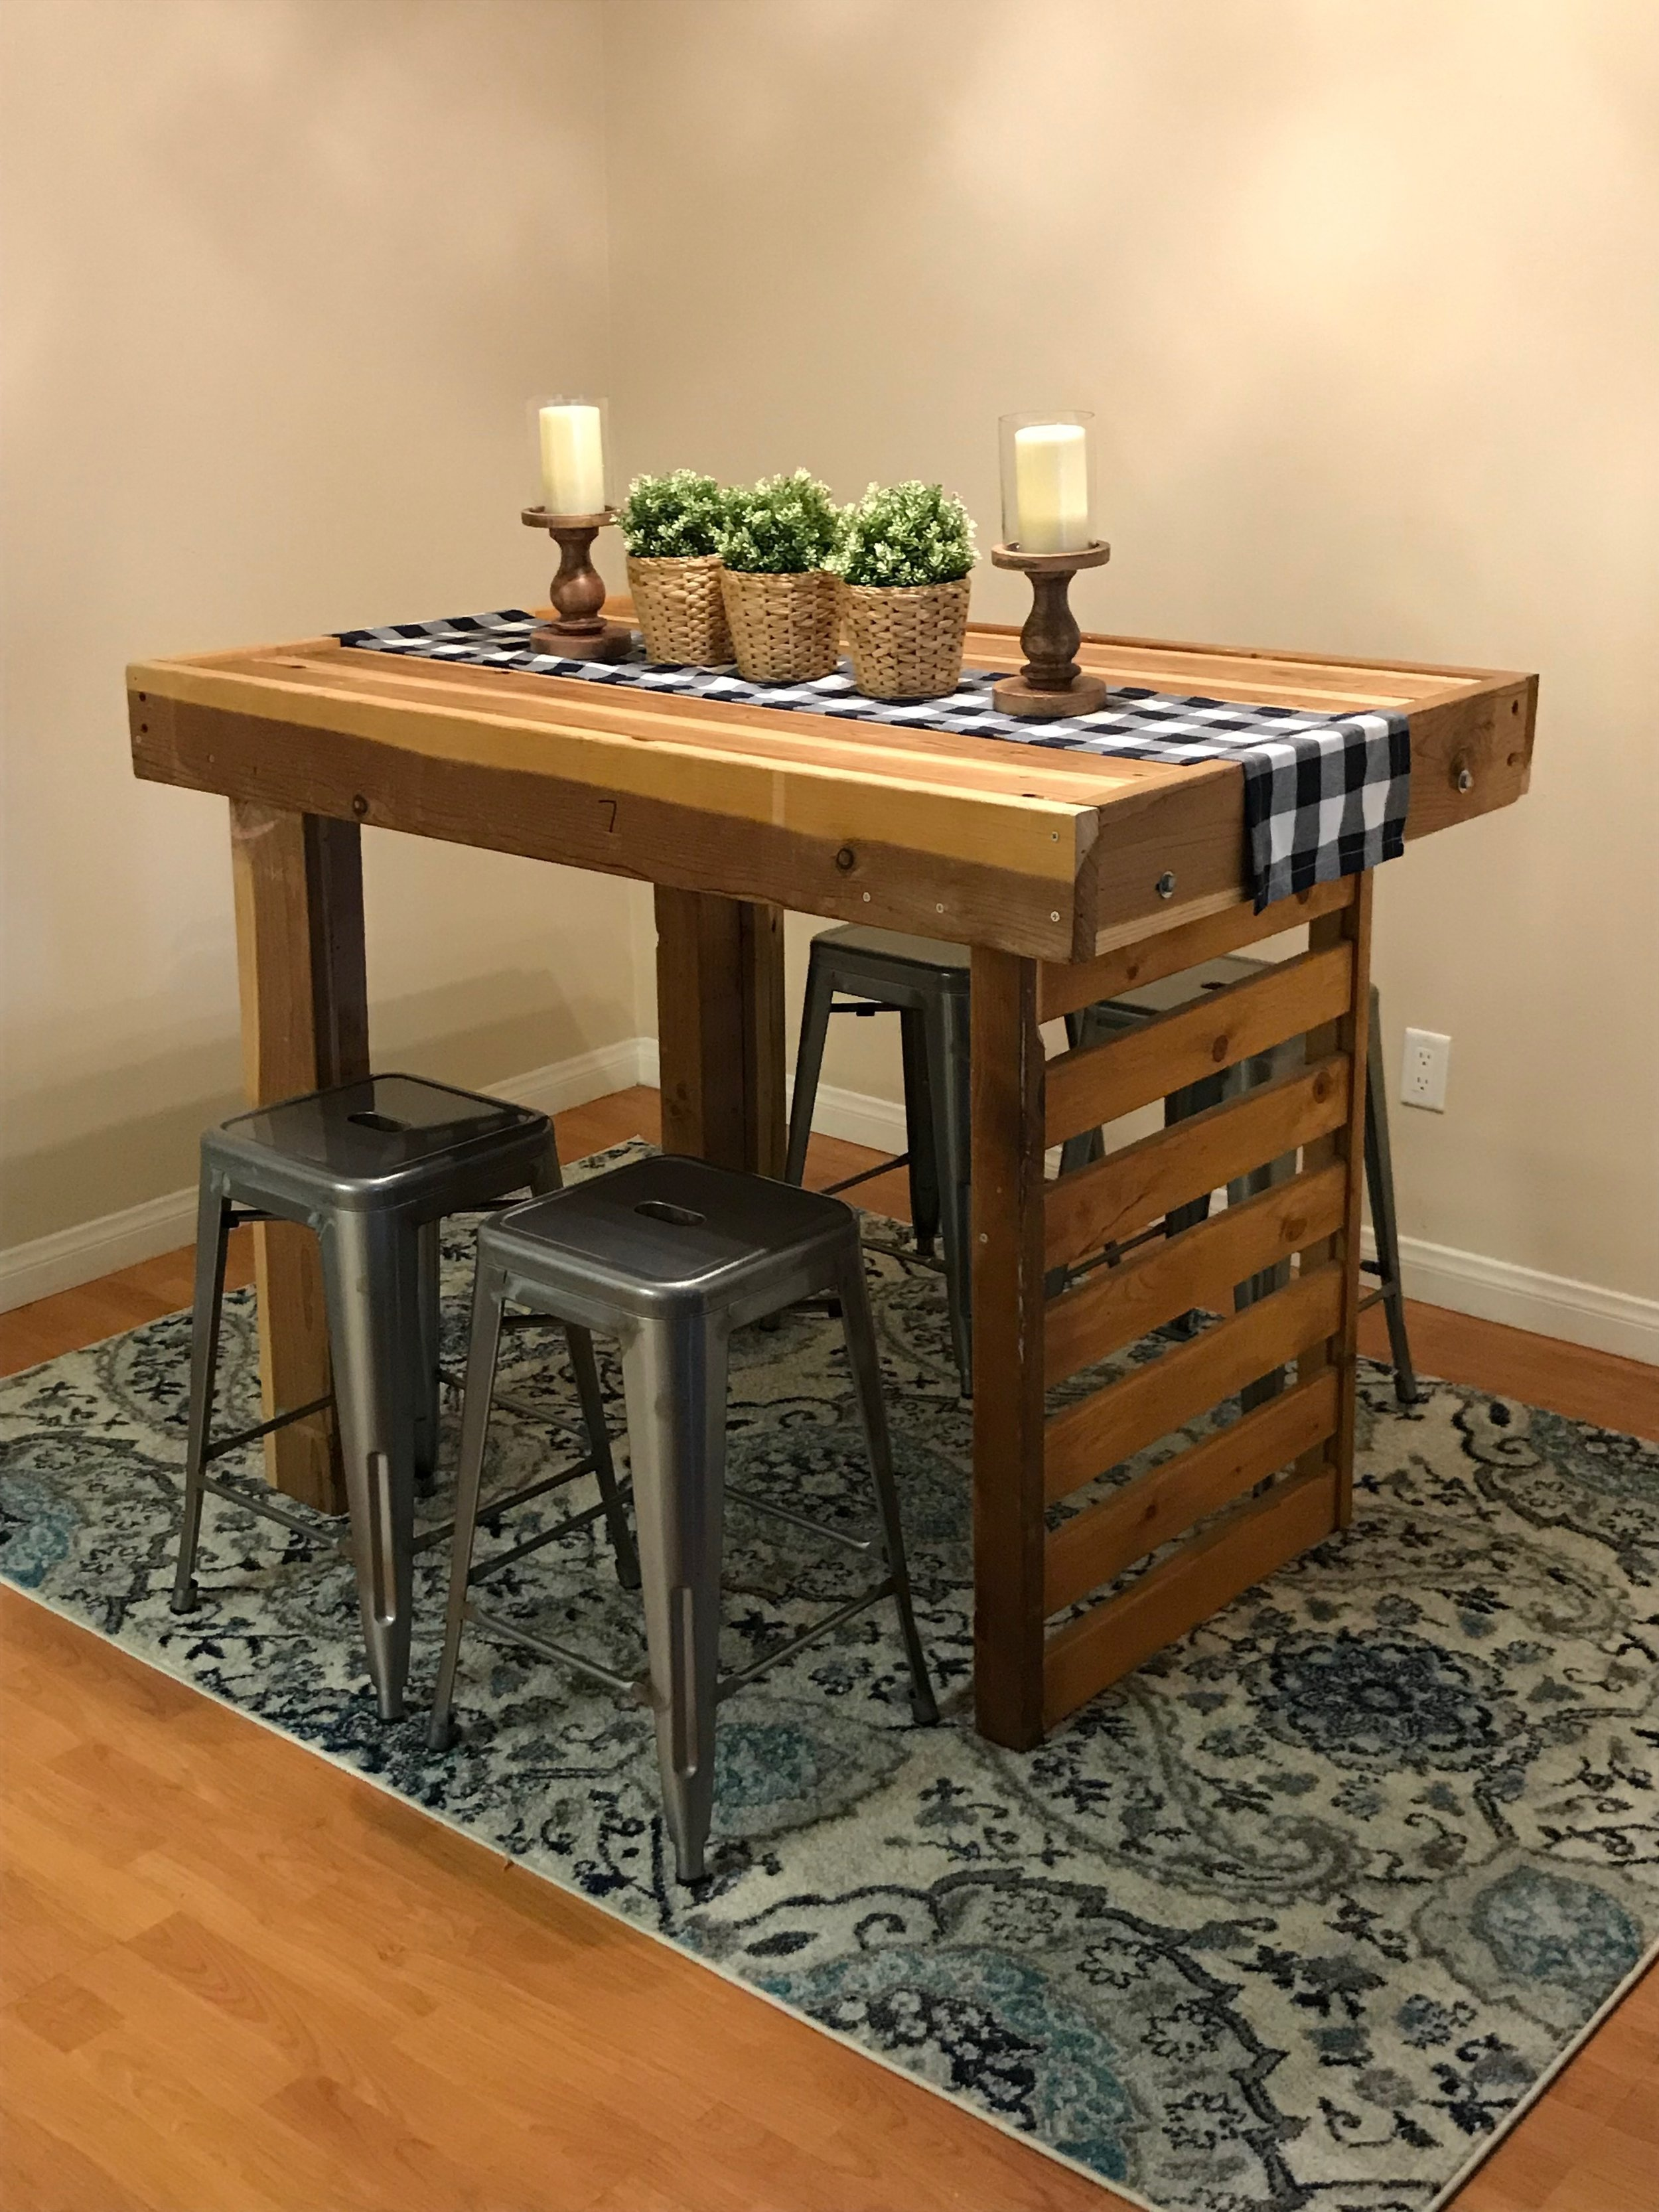 The table I made and am using in my apartment.